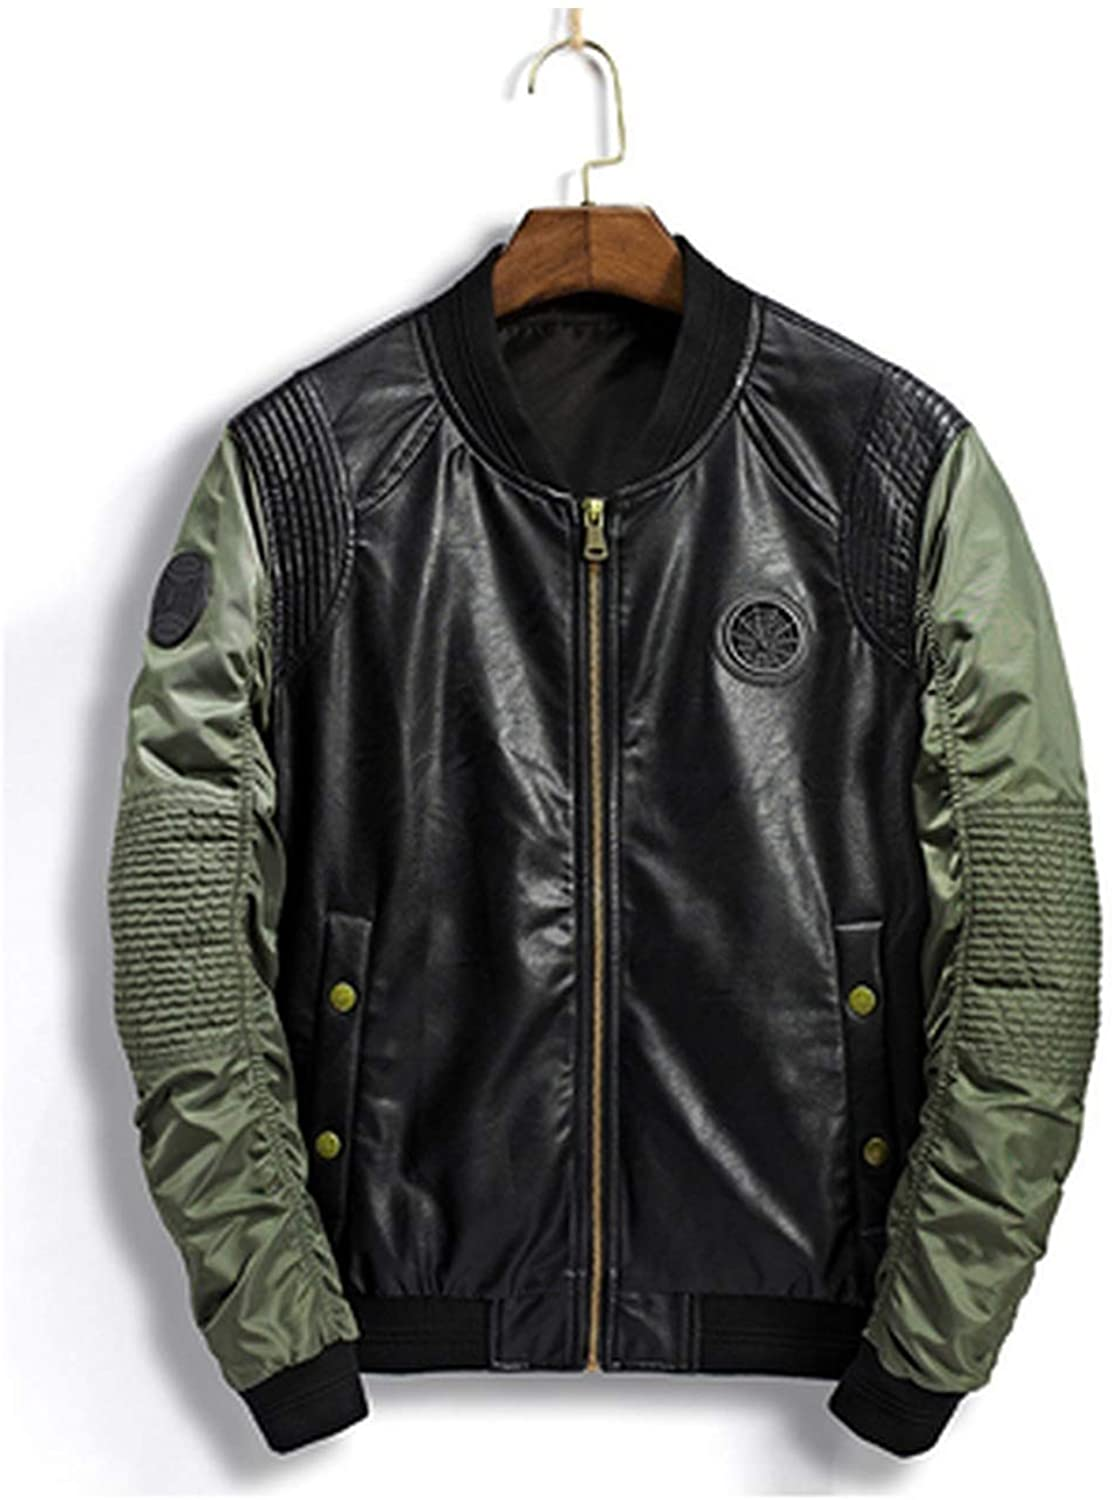 PU Bomber Jacket Men Jacket Pilot Air Force Leather Jackets Army Military Motorcycle Coats,TA031